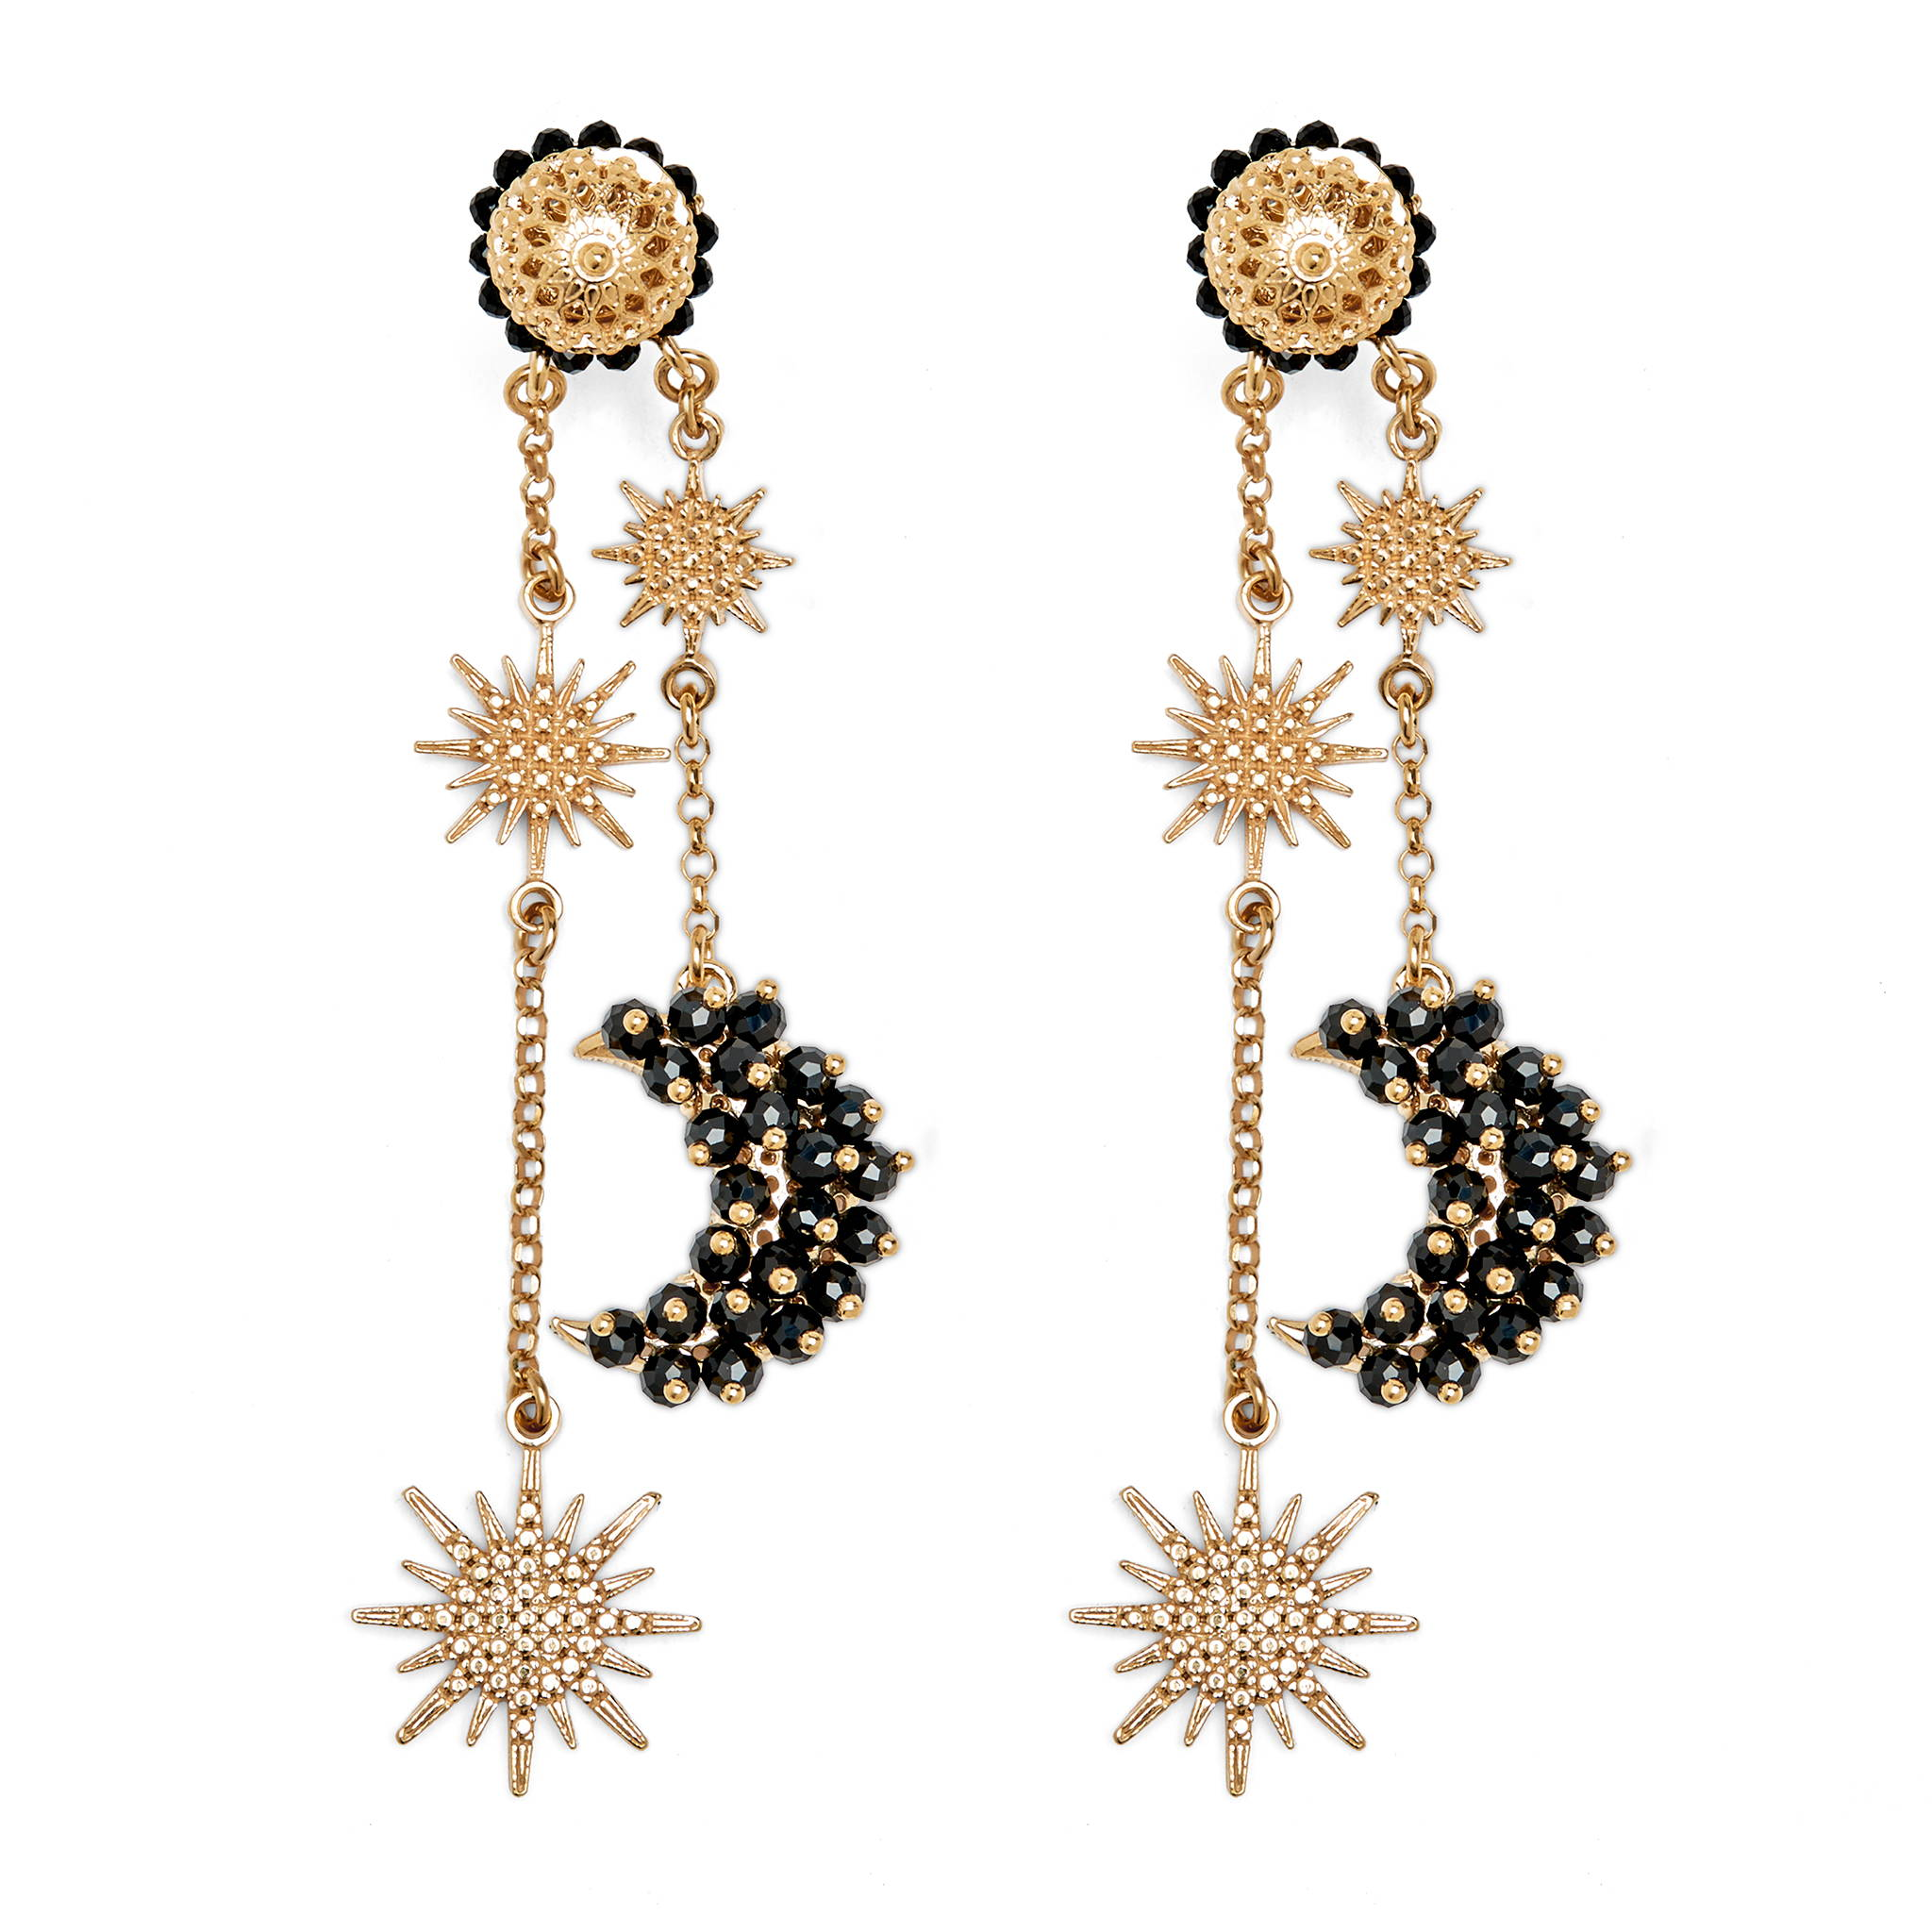 SORU JEWELLERY BLACK LUNA EARRINGS, BLACK AND GOLD MOON EARRINGS